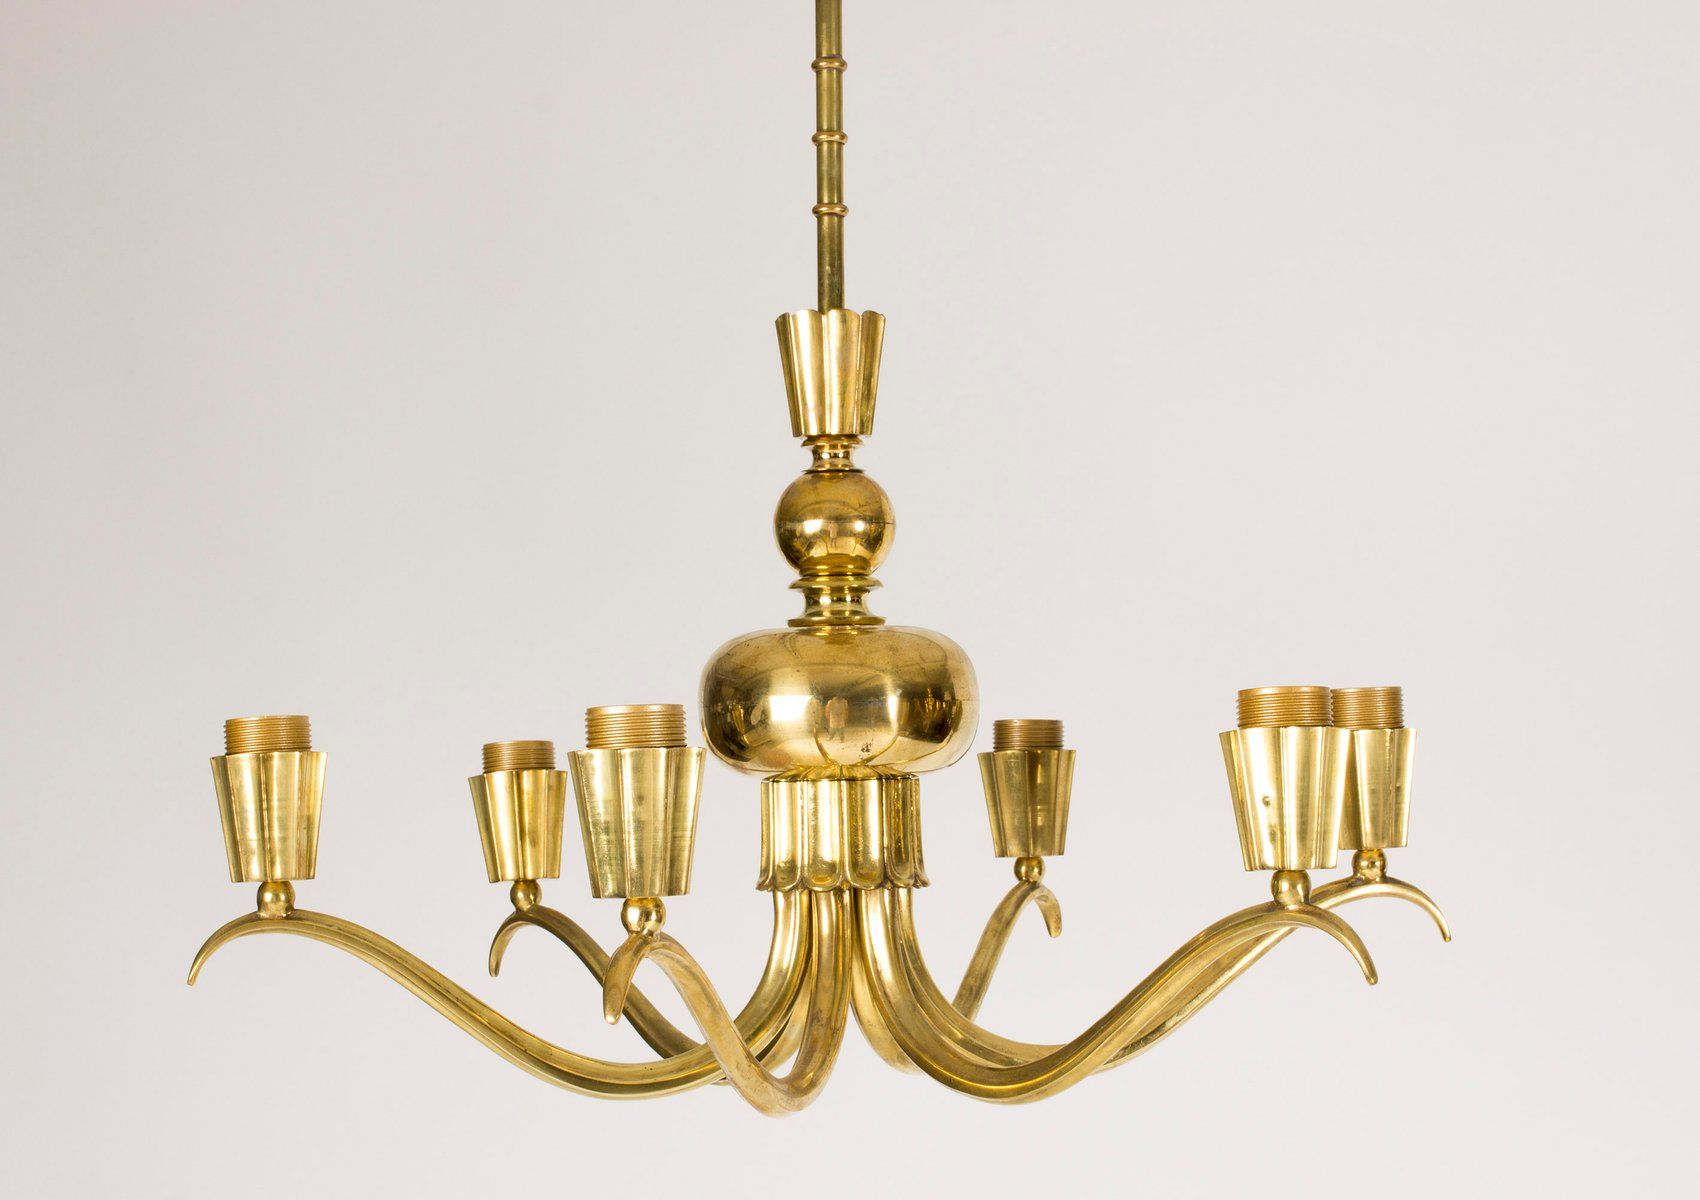 Brass Chandeliers 1940s Set Of 2 For Sale At Pamono